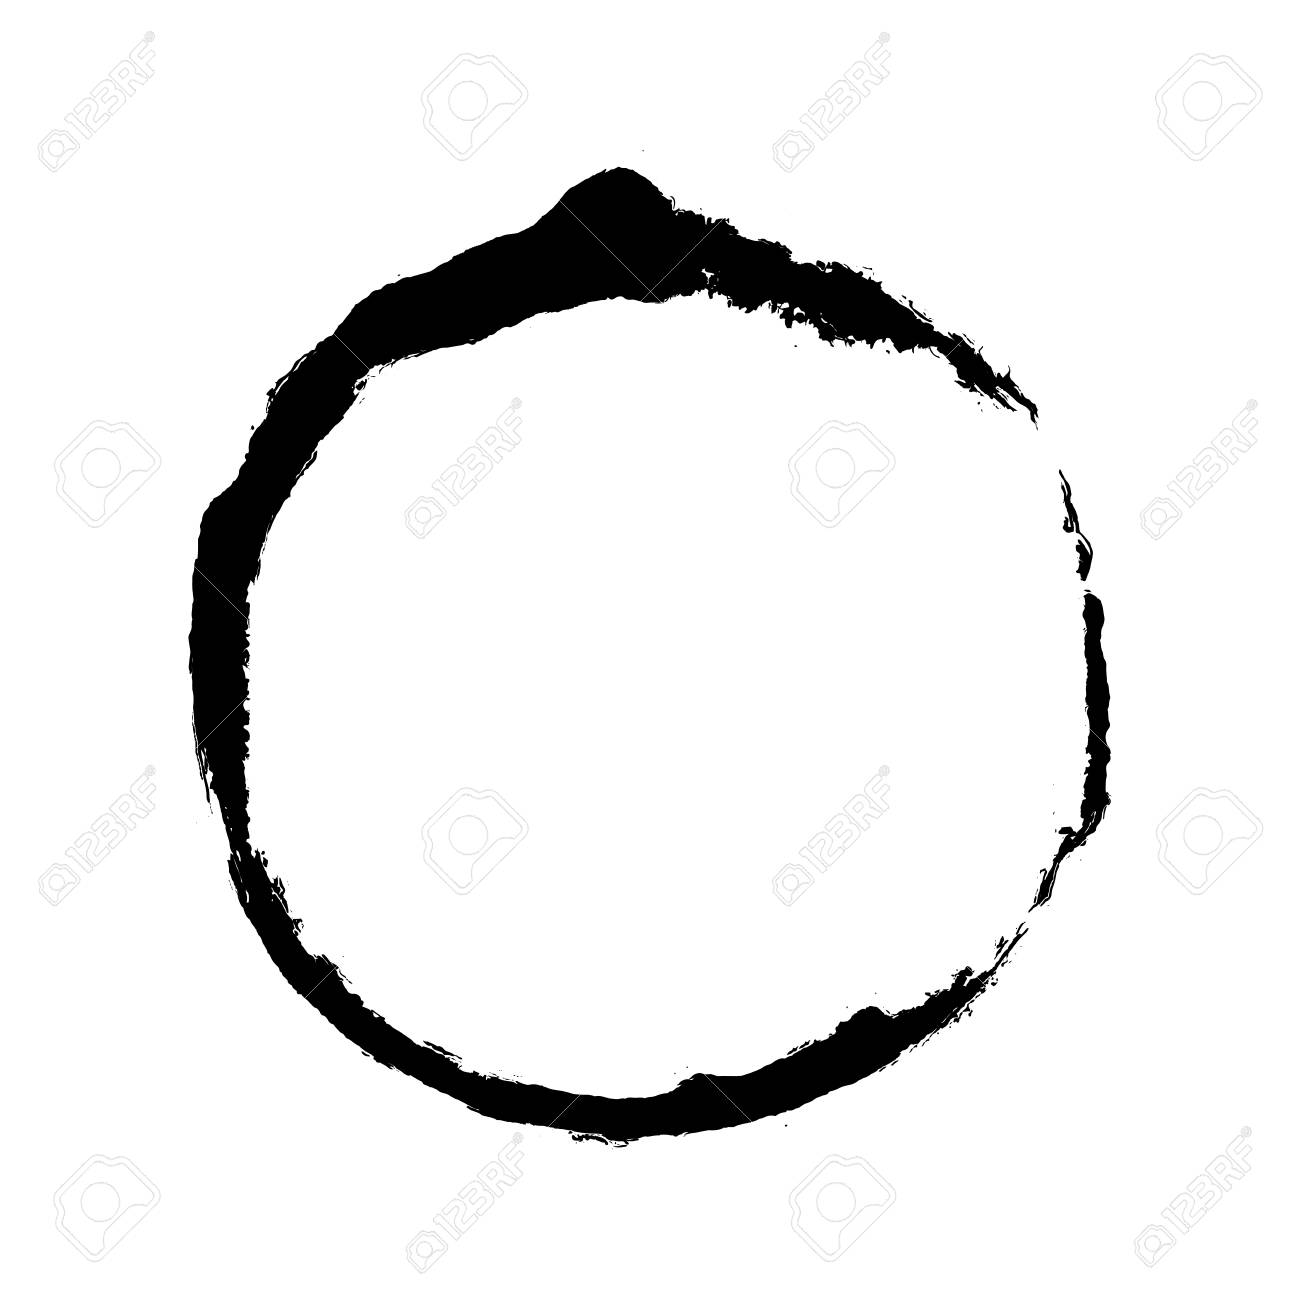 enso design dry black brush circle oil stroke ring watercolor royalty free cliparts vectors and stock illustration image 126207950 enso design dry black brush circle oil stroke ring watercolor